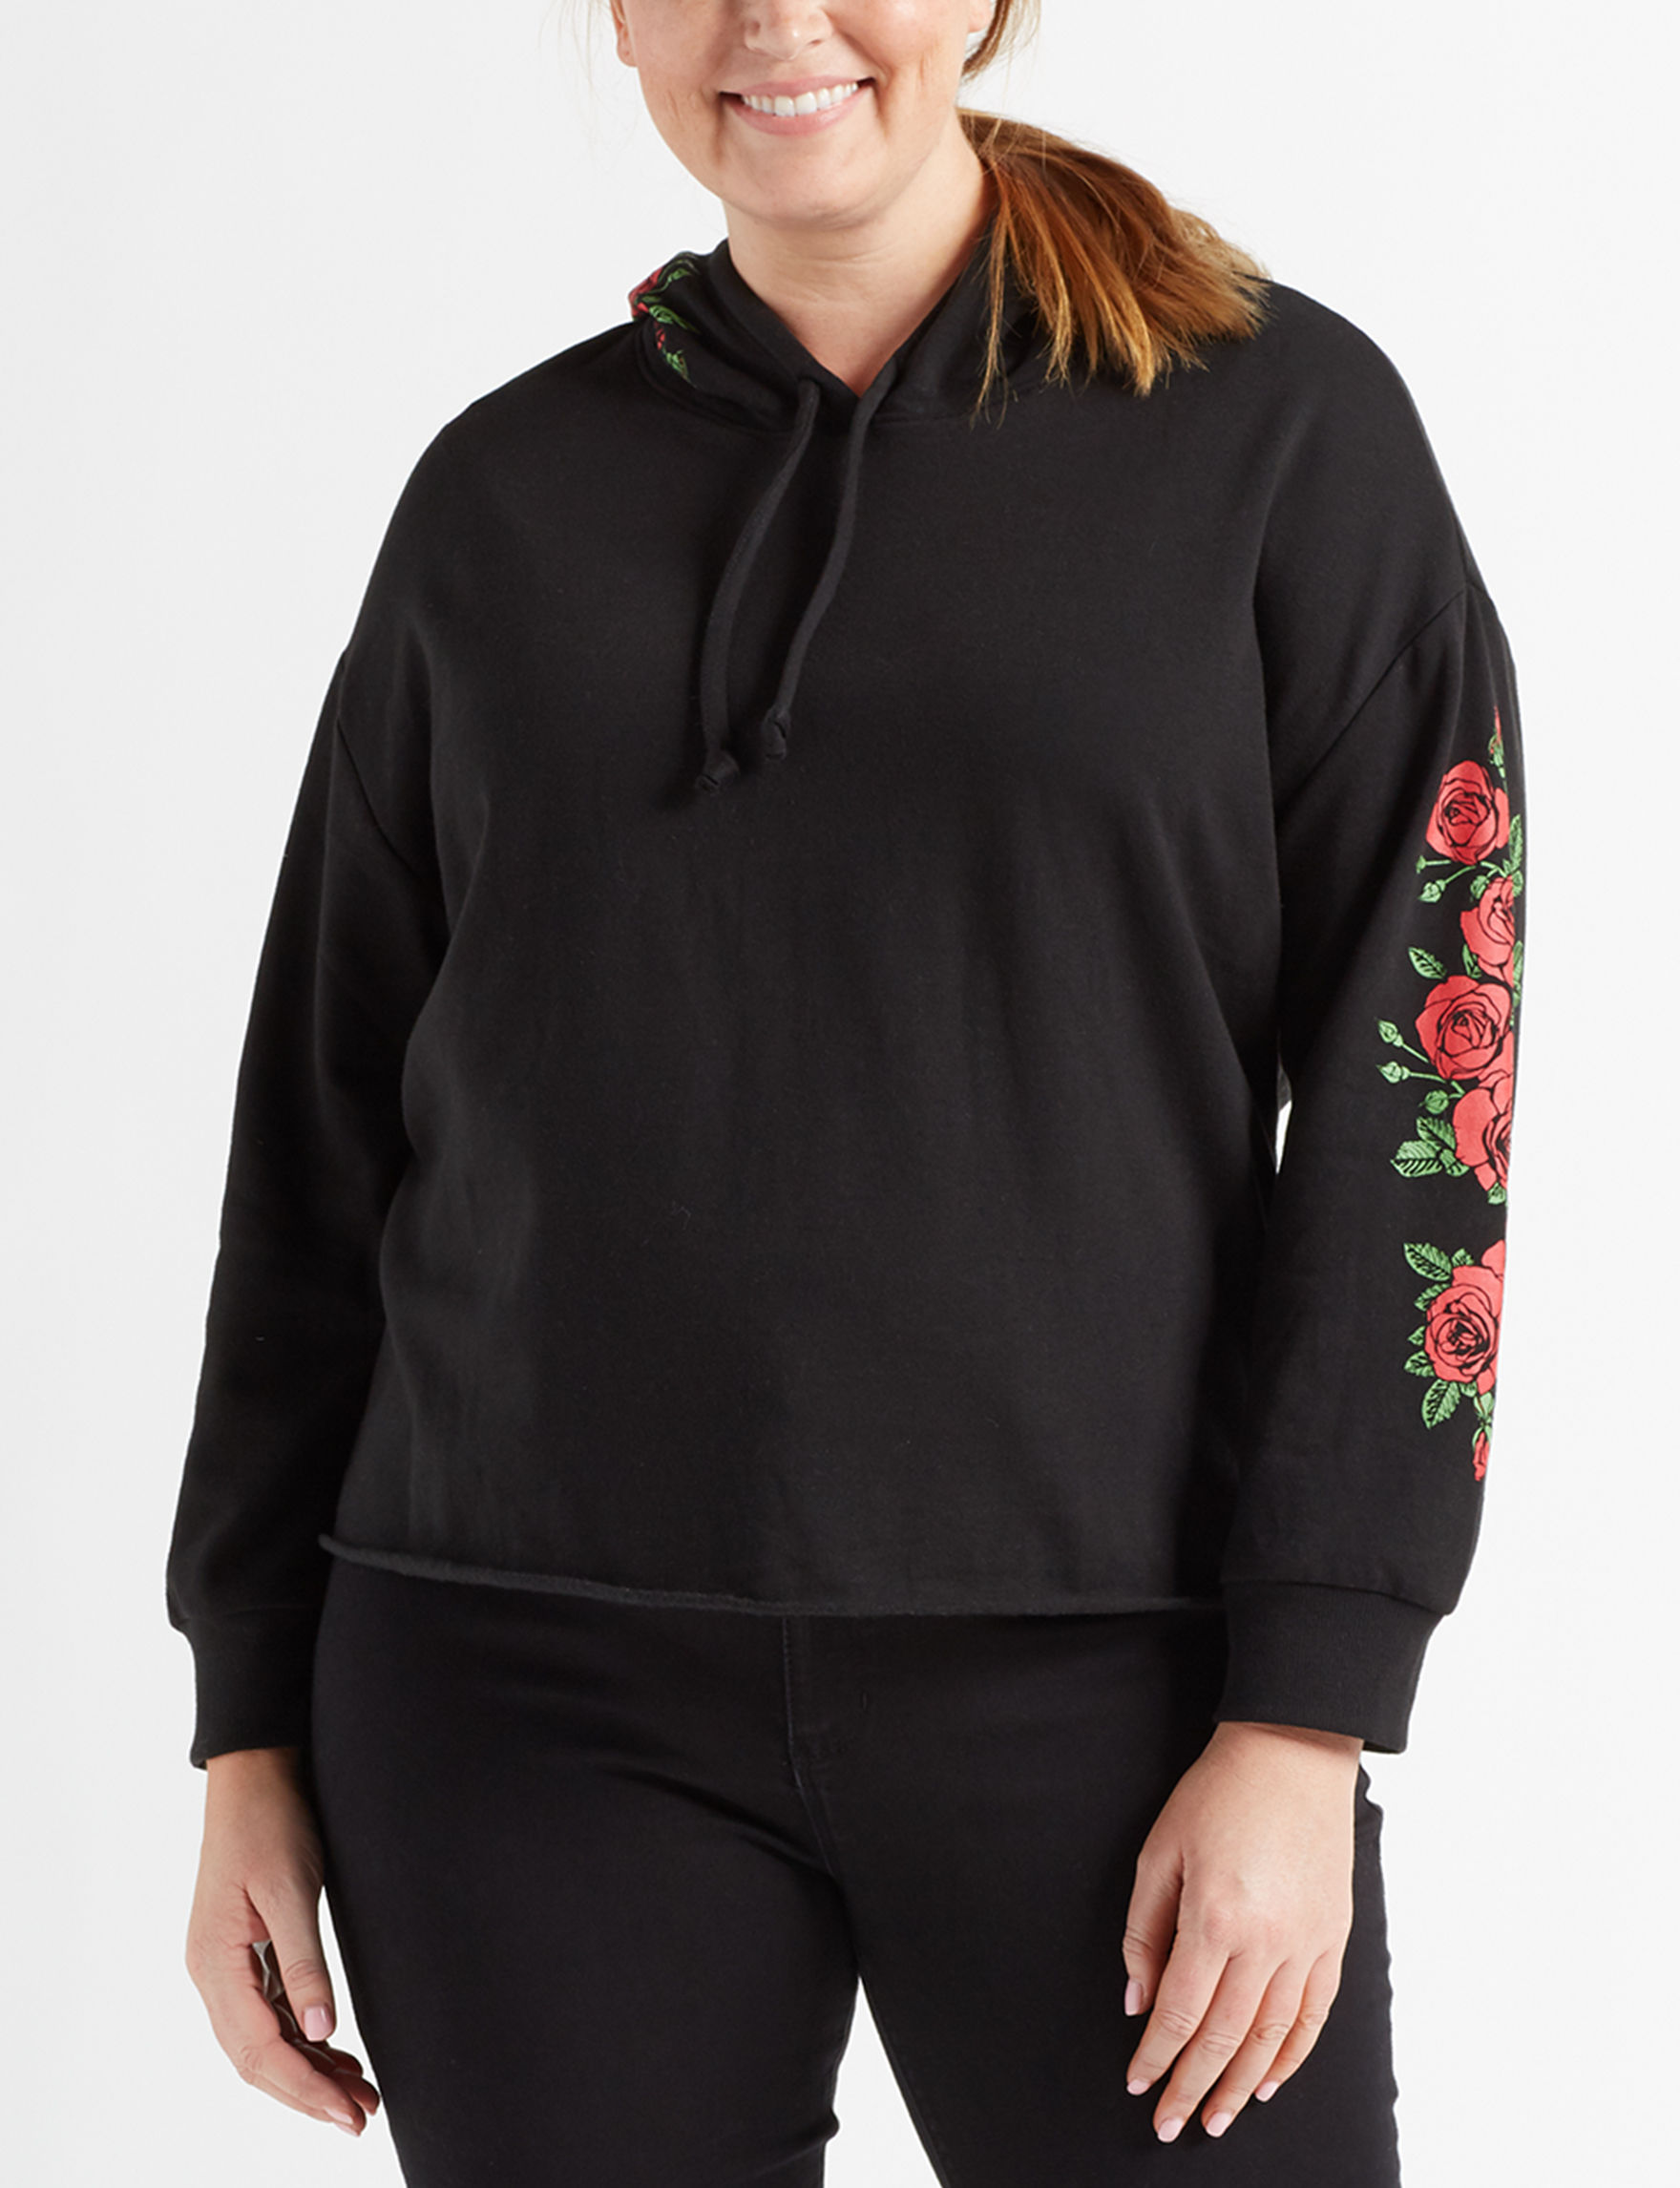 Rebellious One Black Pull-overs